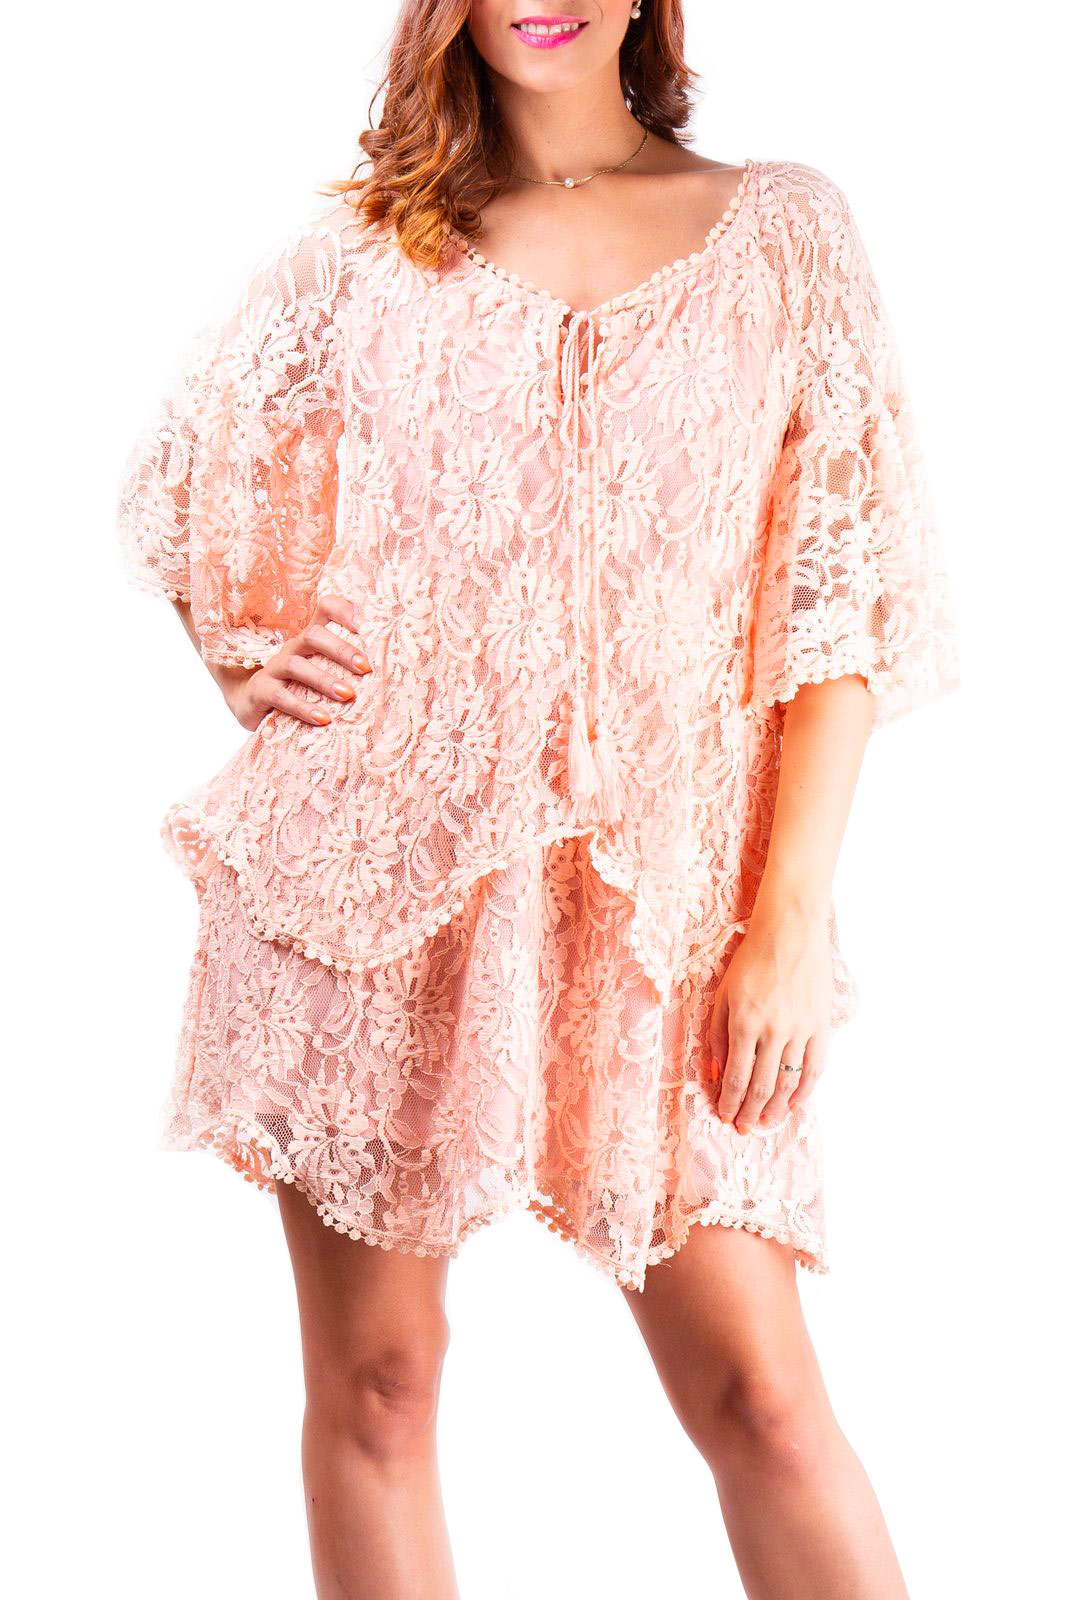 Simpo Powder Pink Women's Lace Dress Lace Up